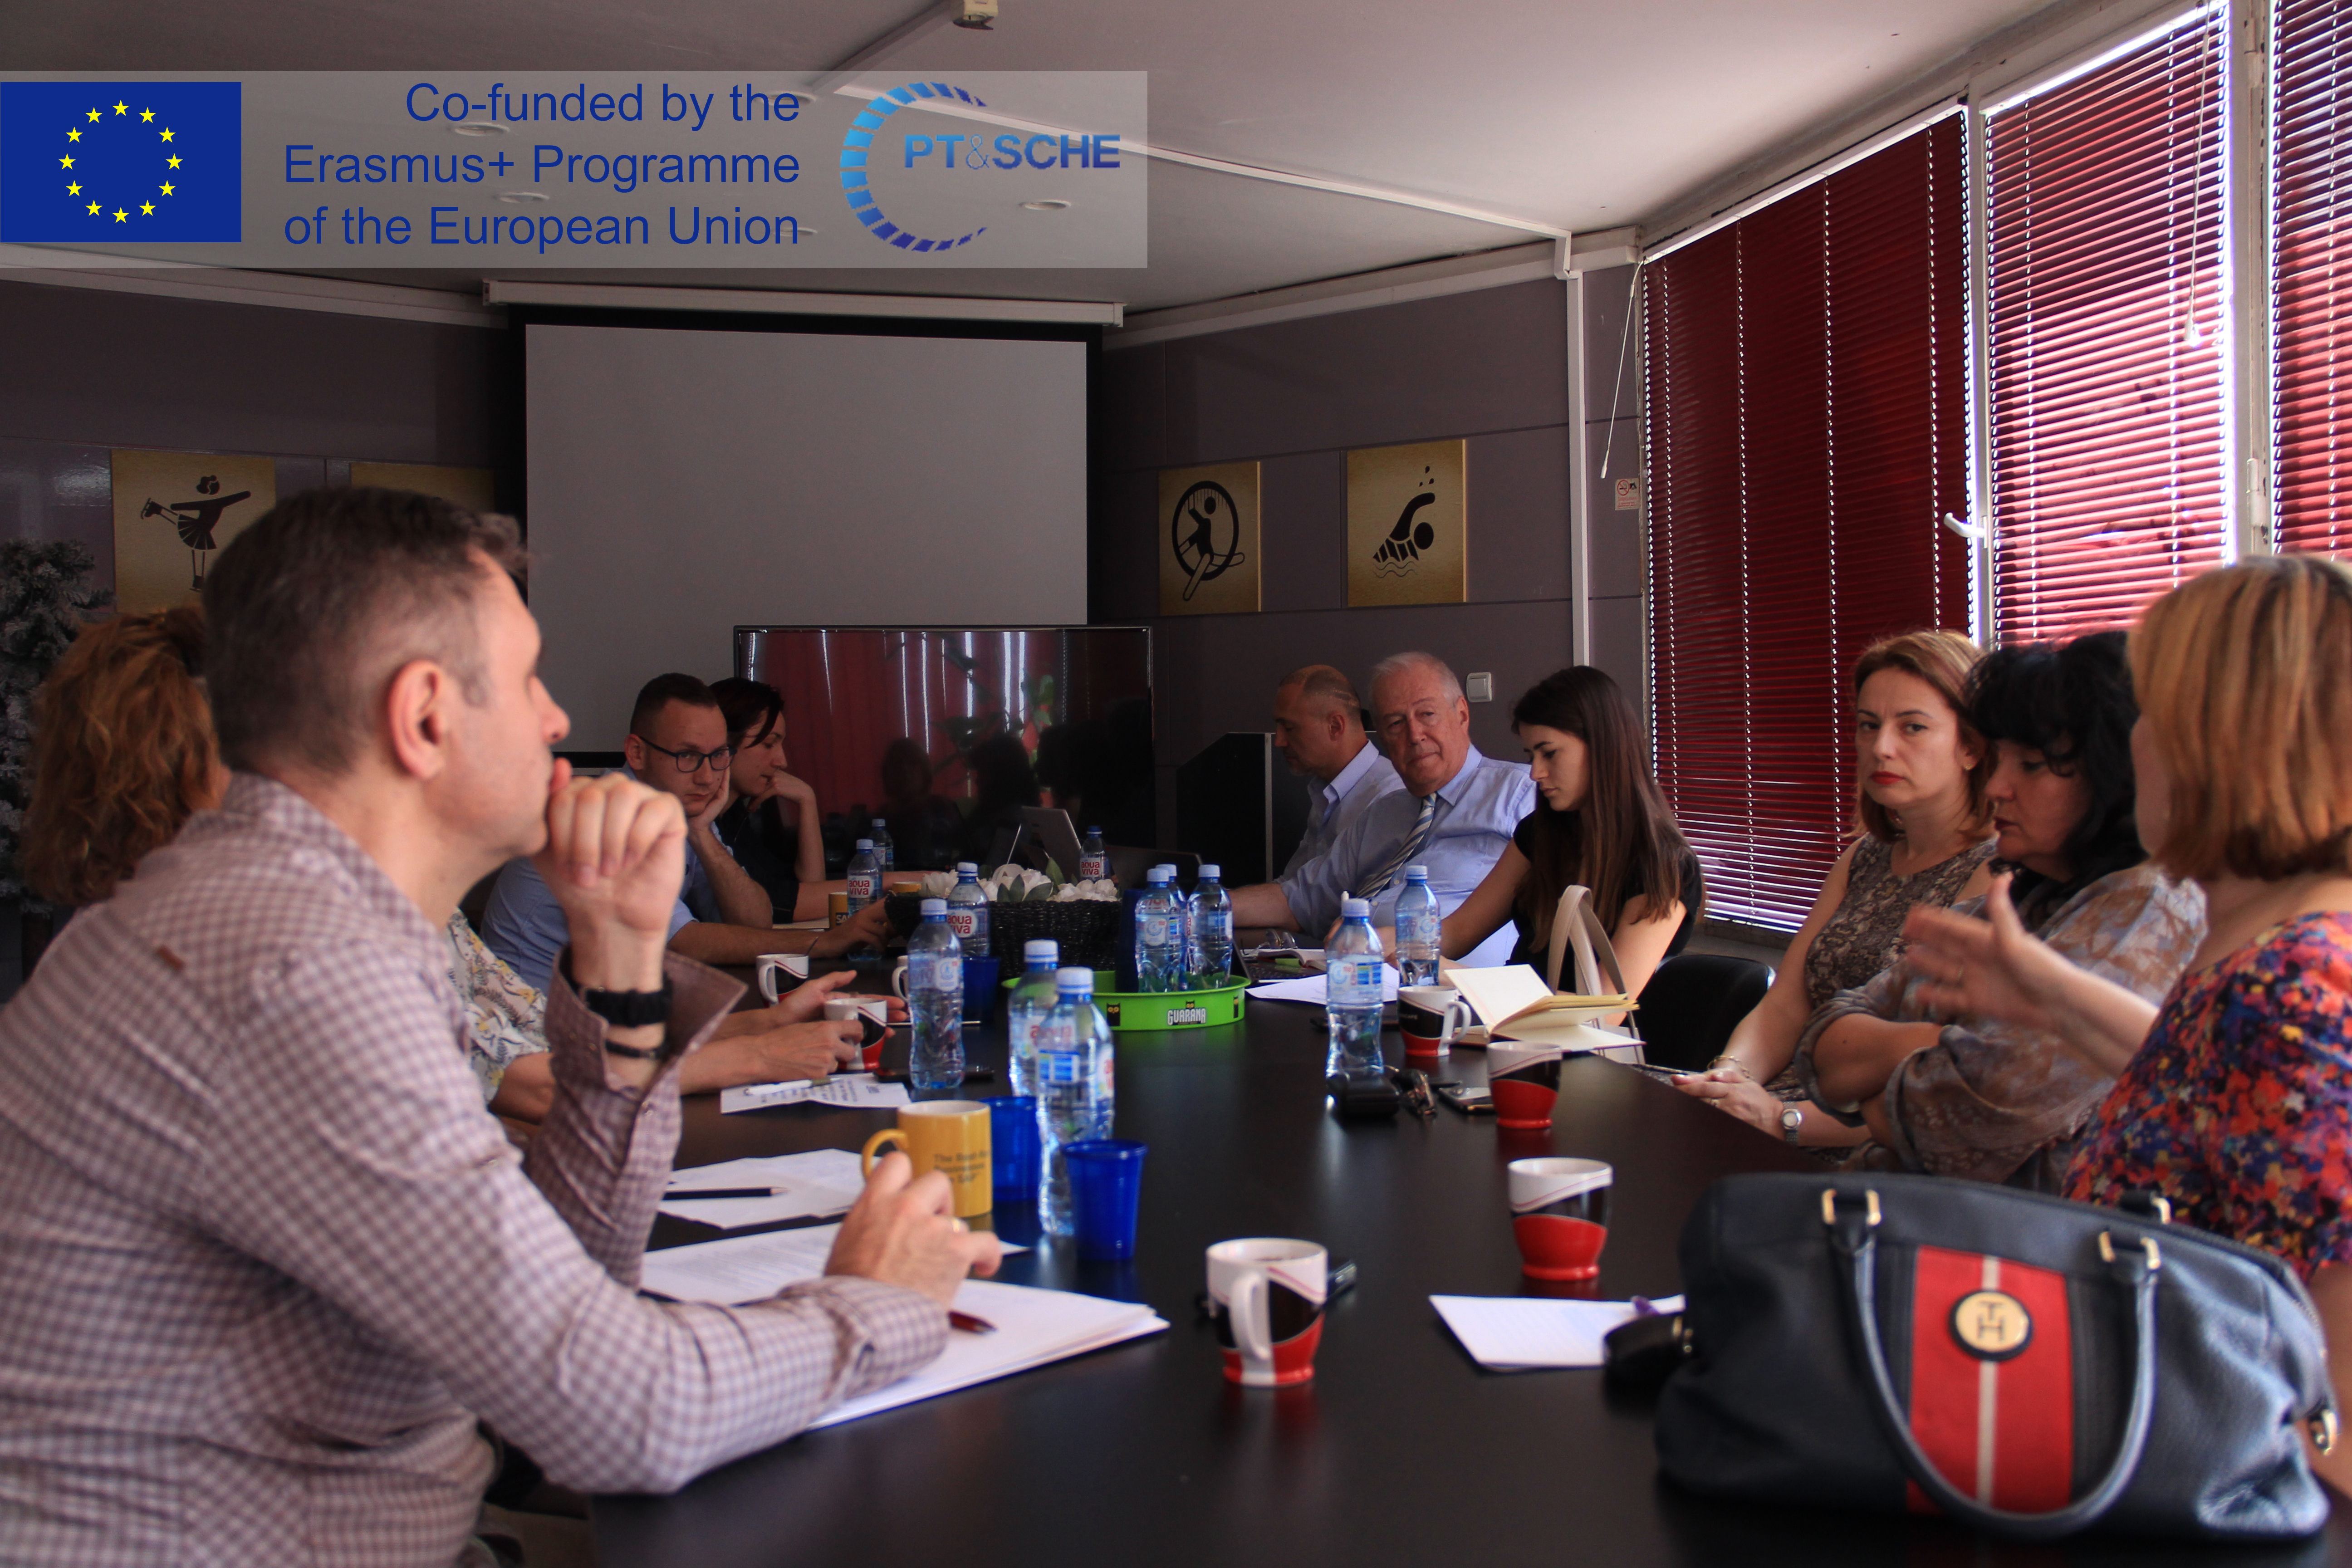 11th Local Committee Meeting organized by the Belgrade Metropolitan Universety